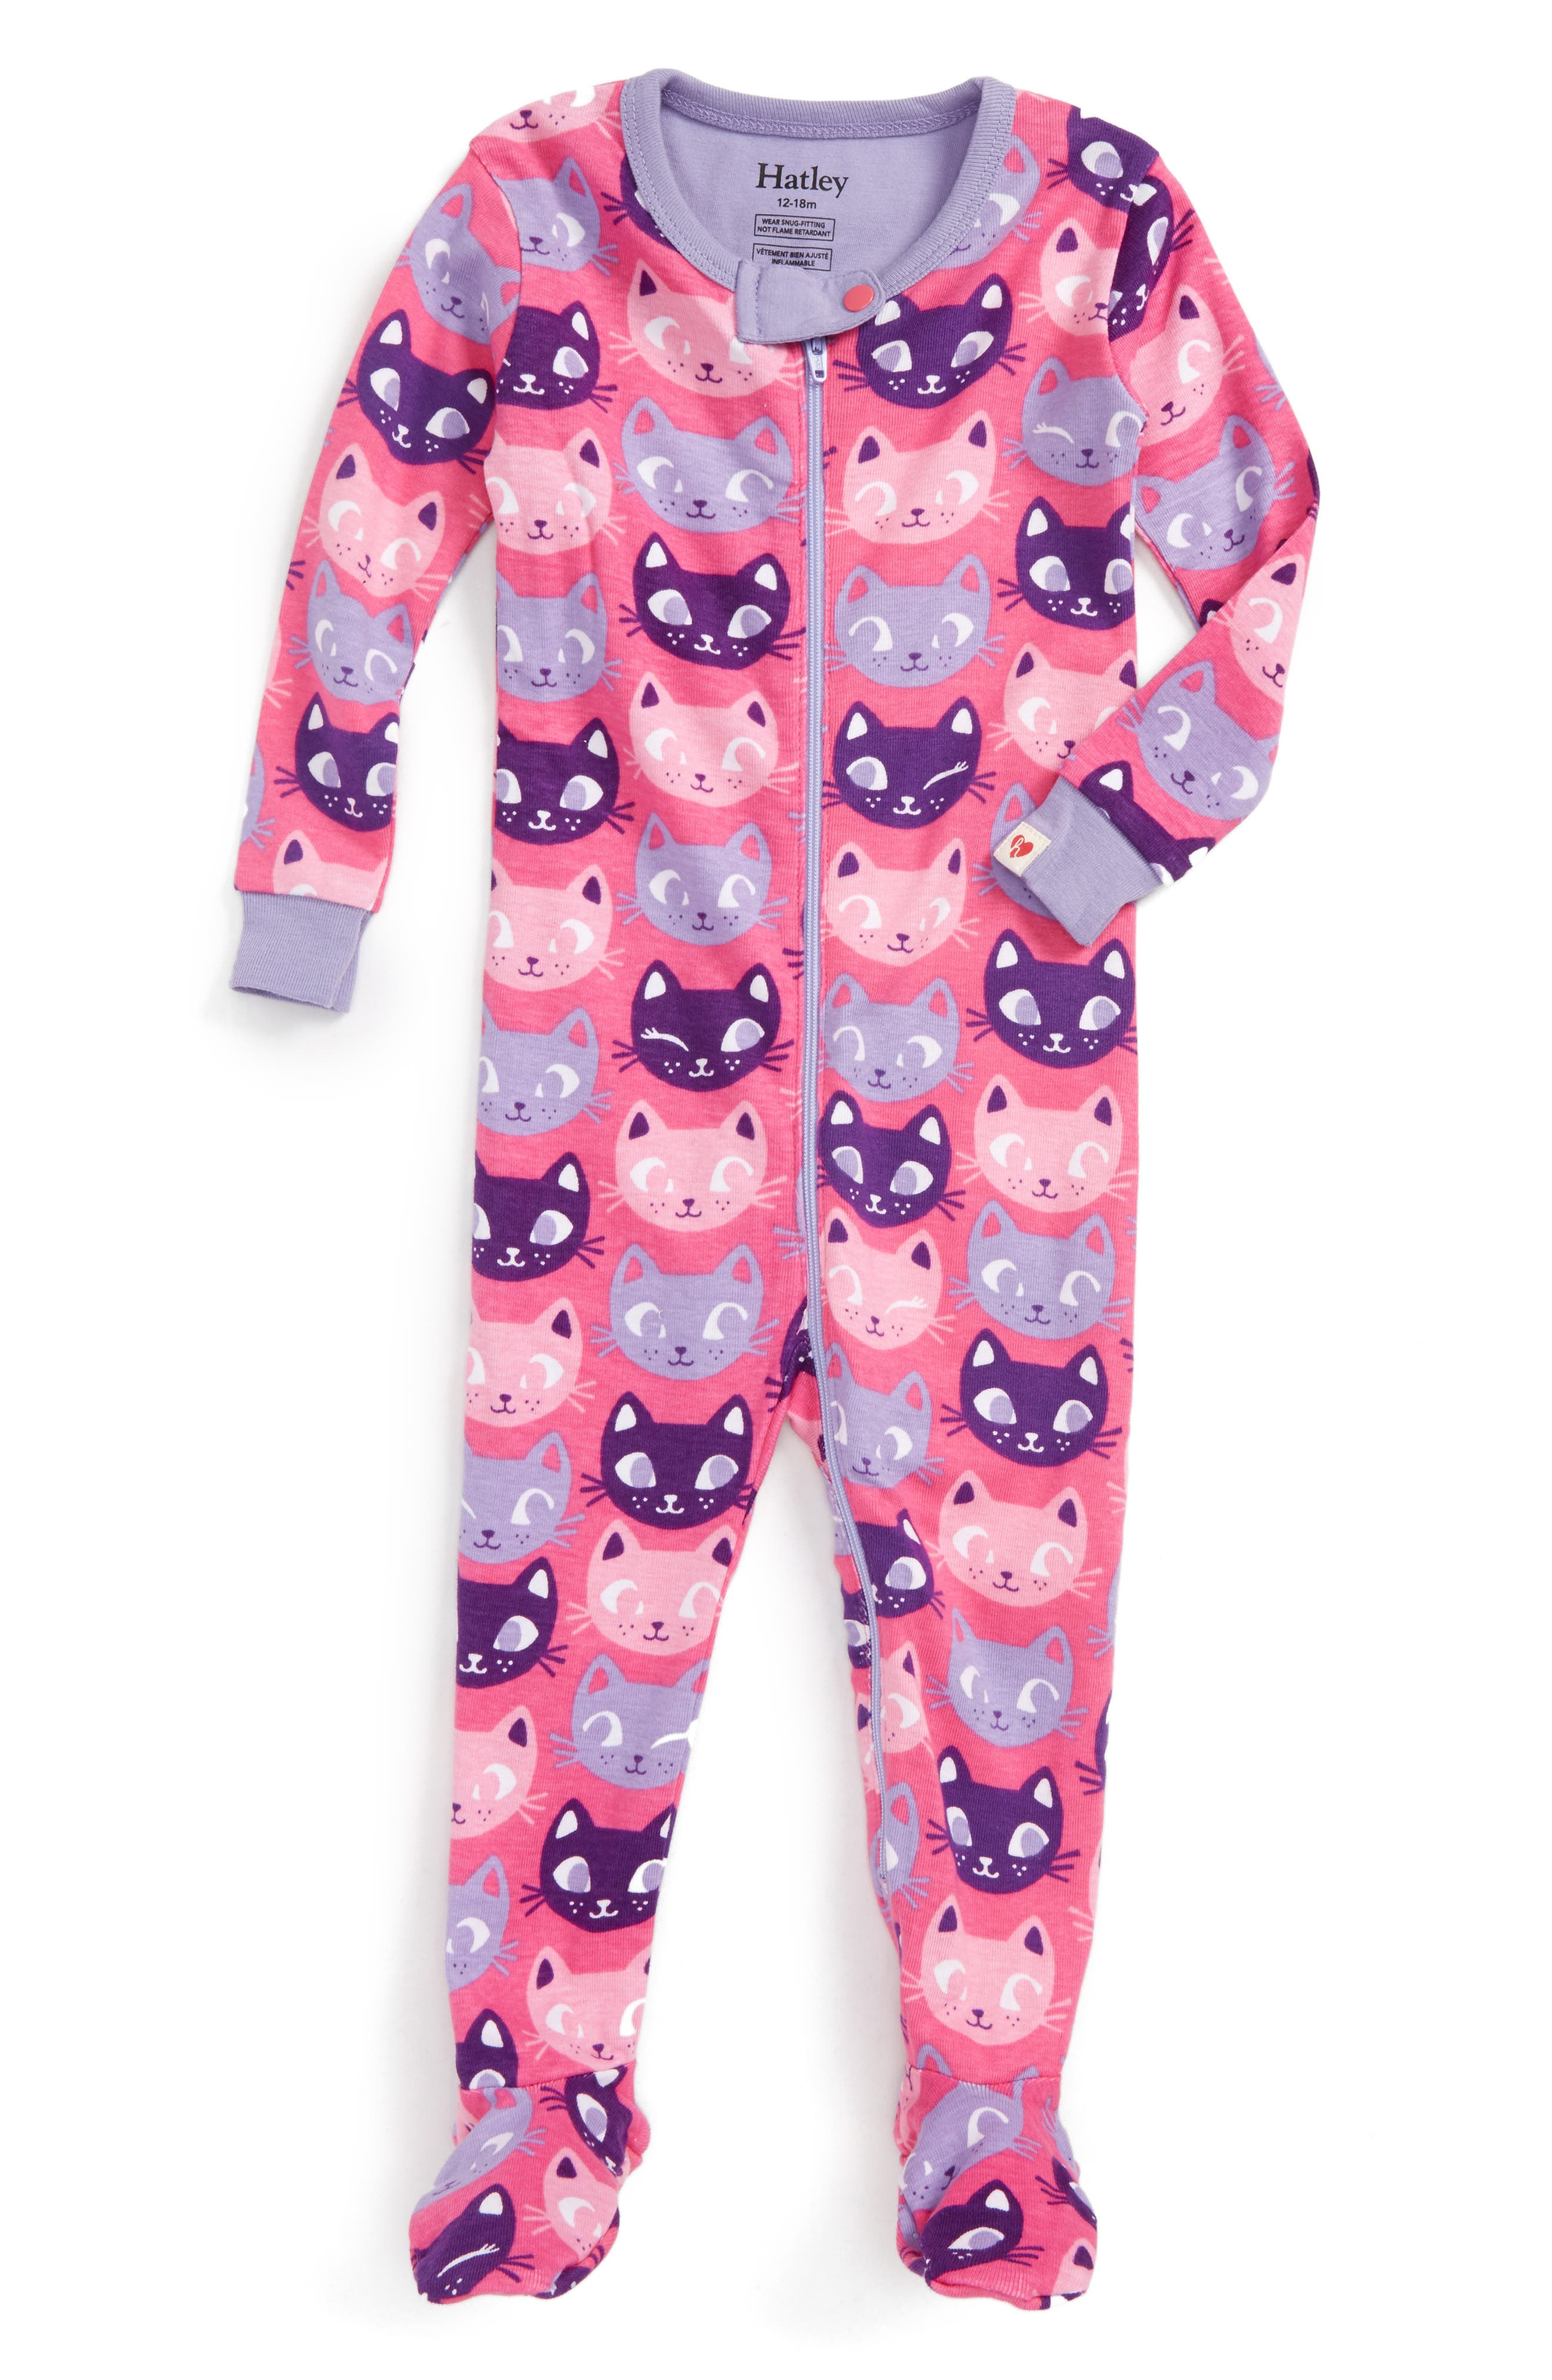 Main Image - Hatley Organic Cotton Fitted One-Piece Pajamas (Baby Girls)